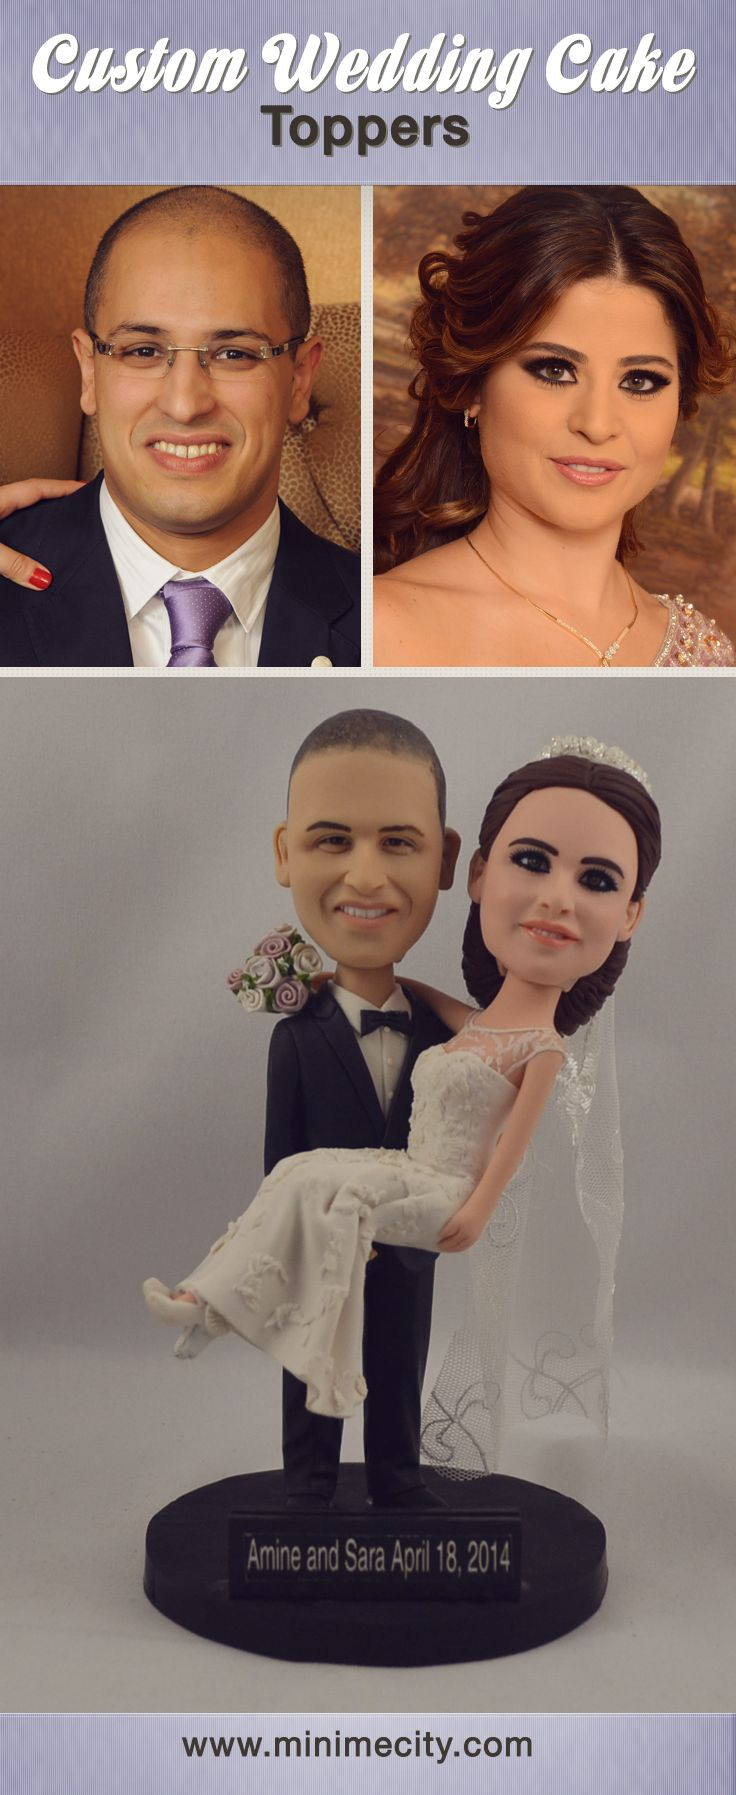 wedding cake toppers that look like bride and groom 17 best images about beautiful wedding on 26608